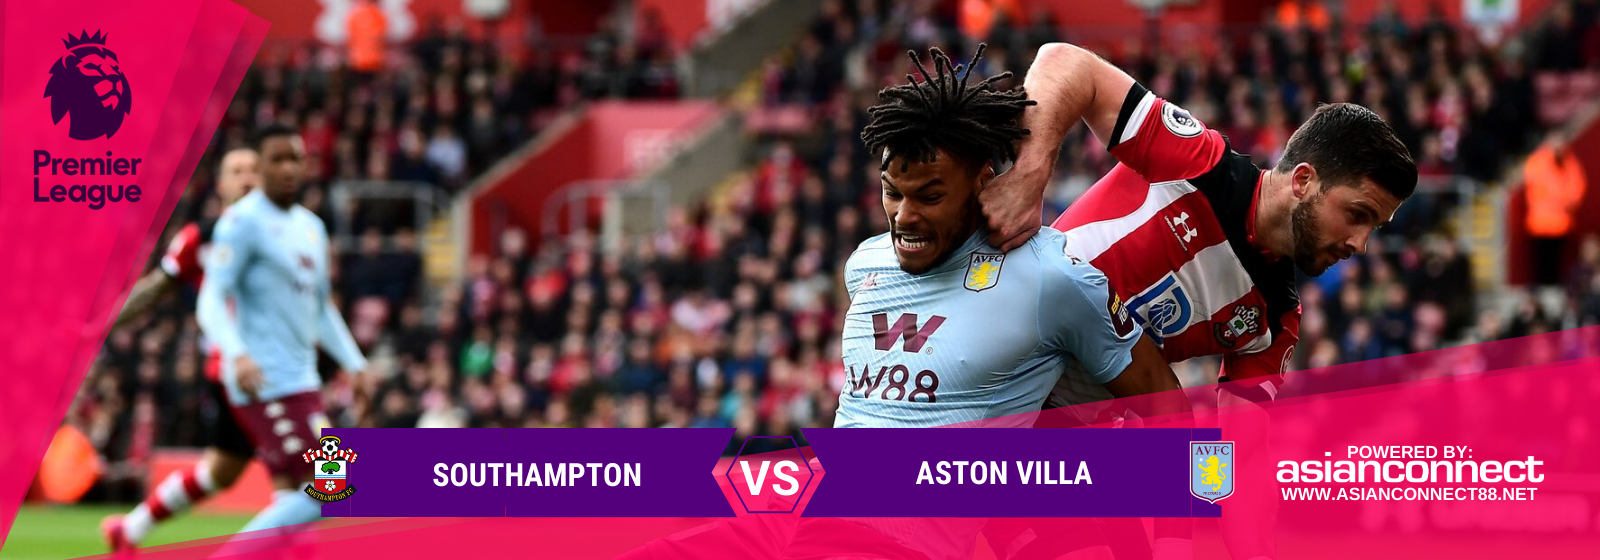 Asianodds: Southampton vs Aston Villa Odds for February 22, 2020